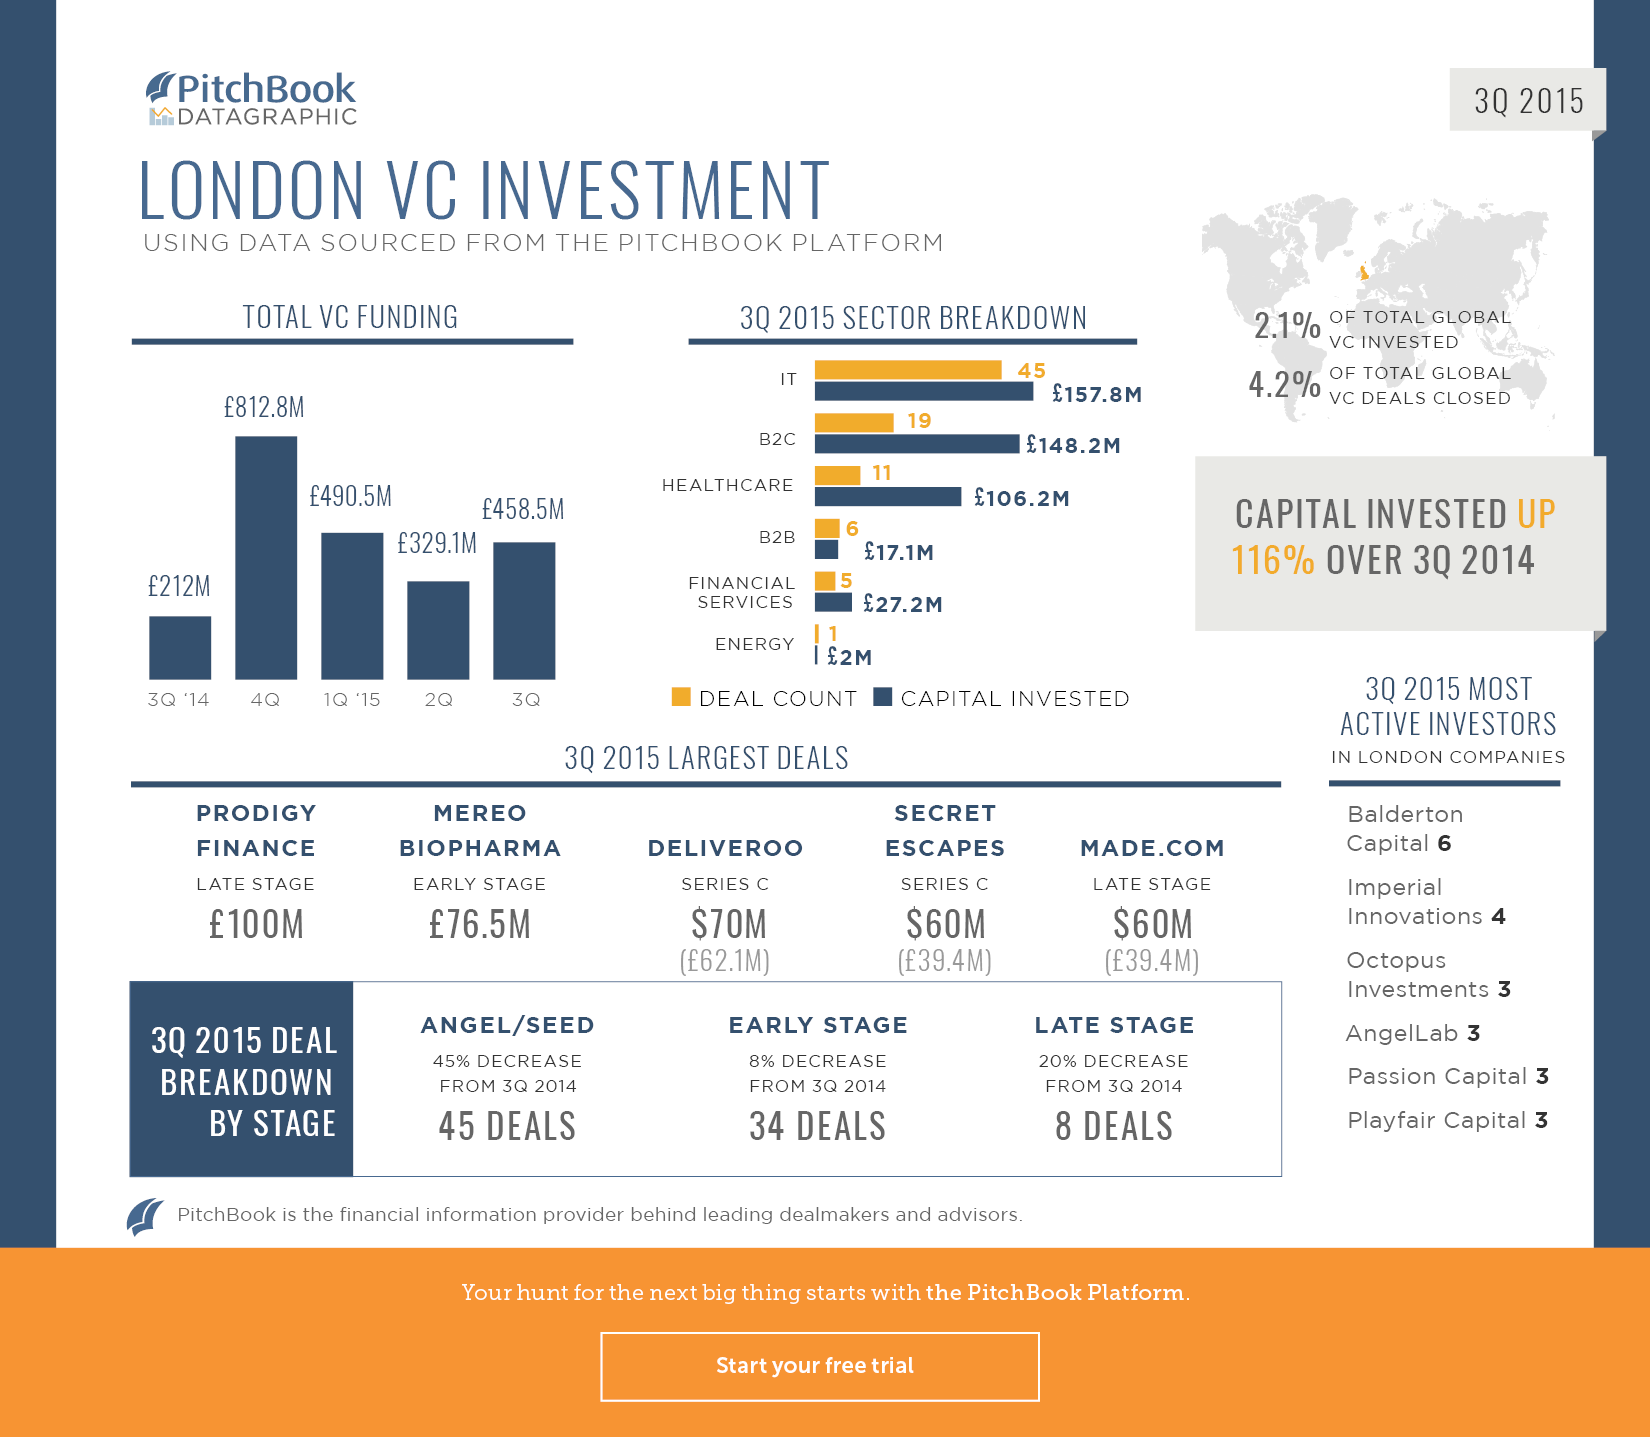 3Q 2015 London Datagraphic